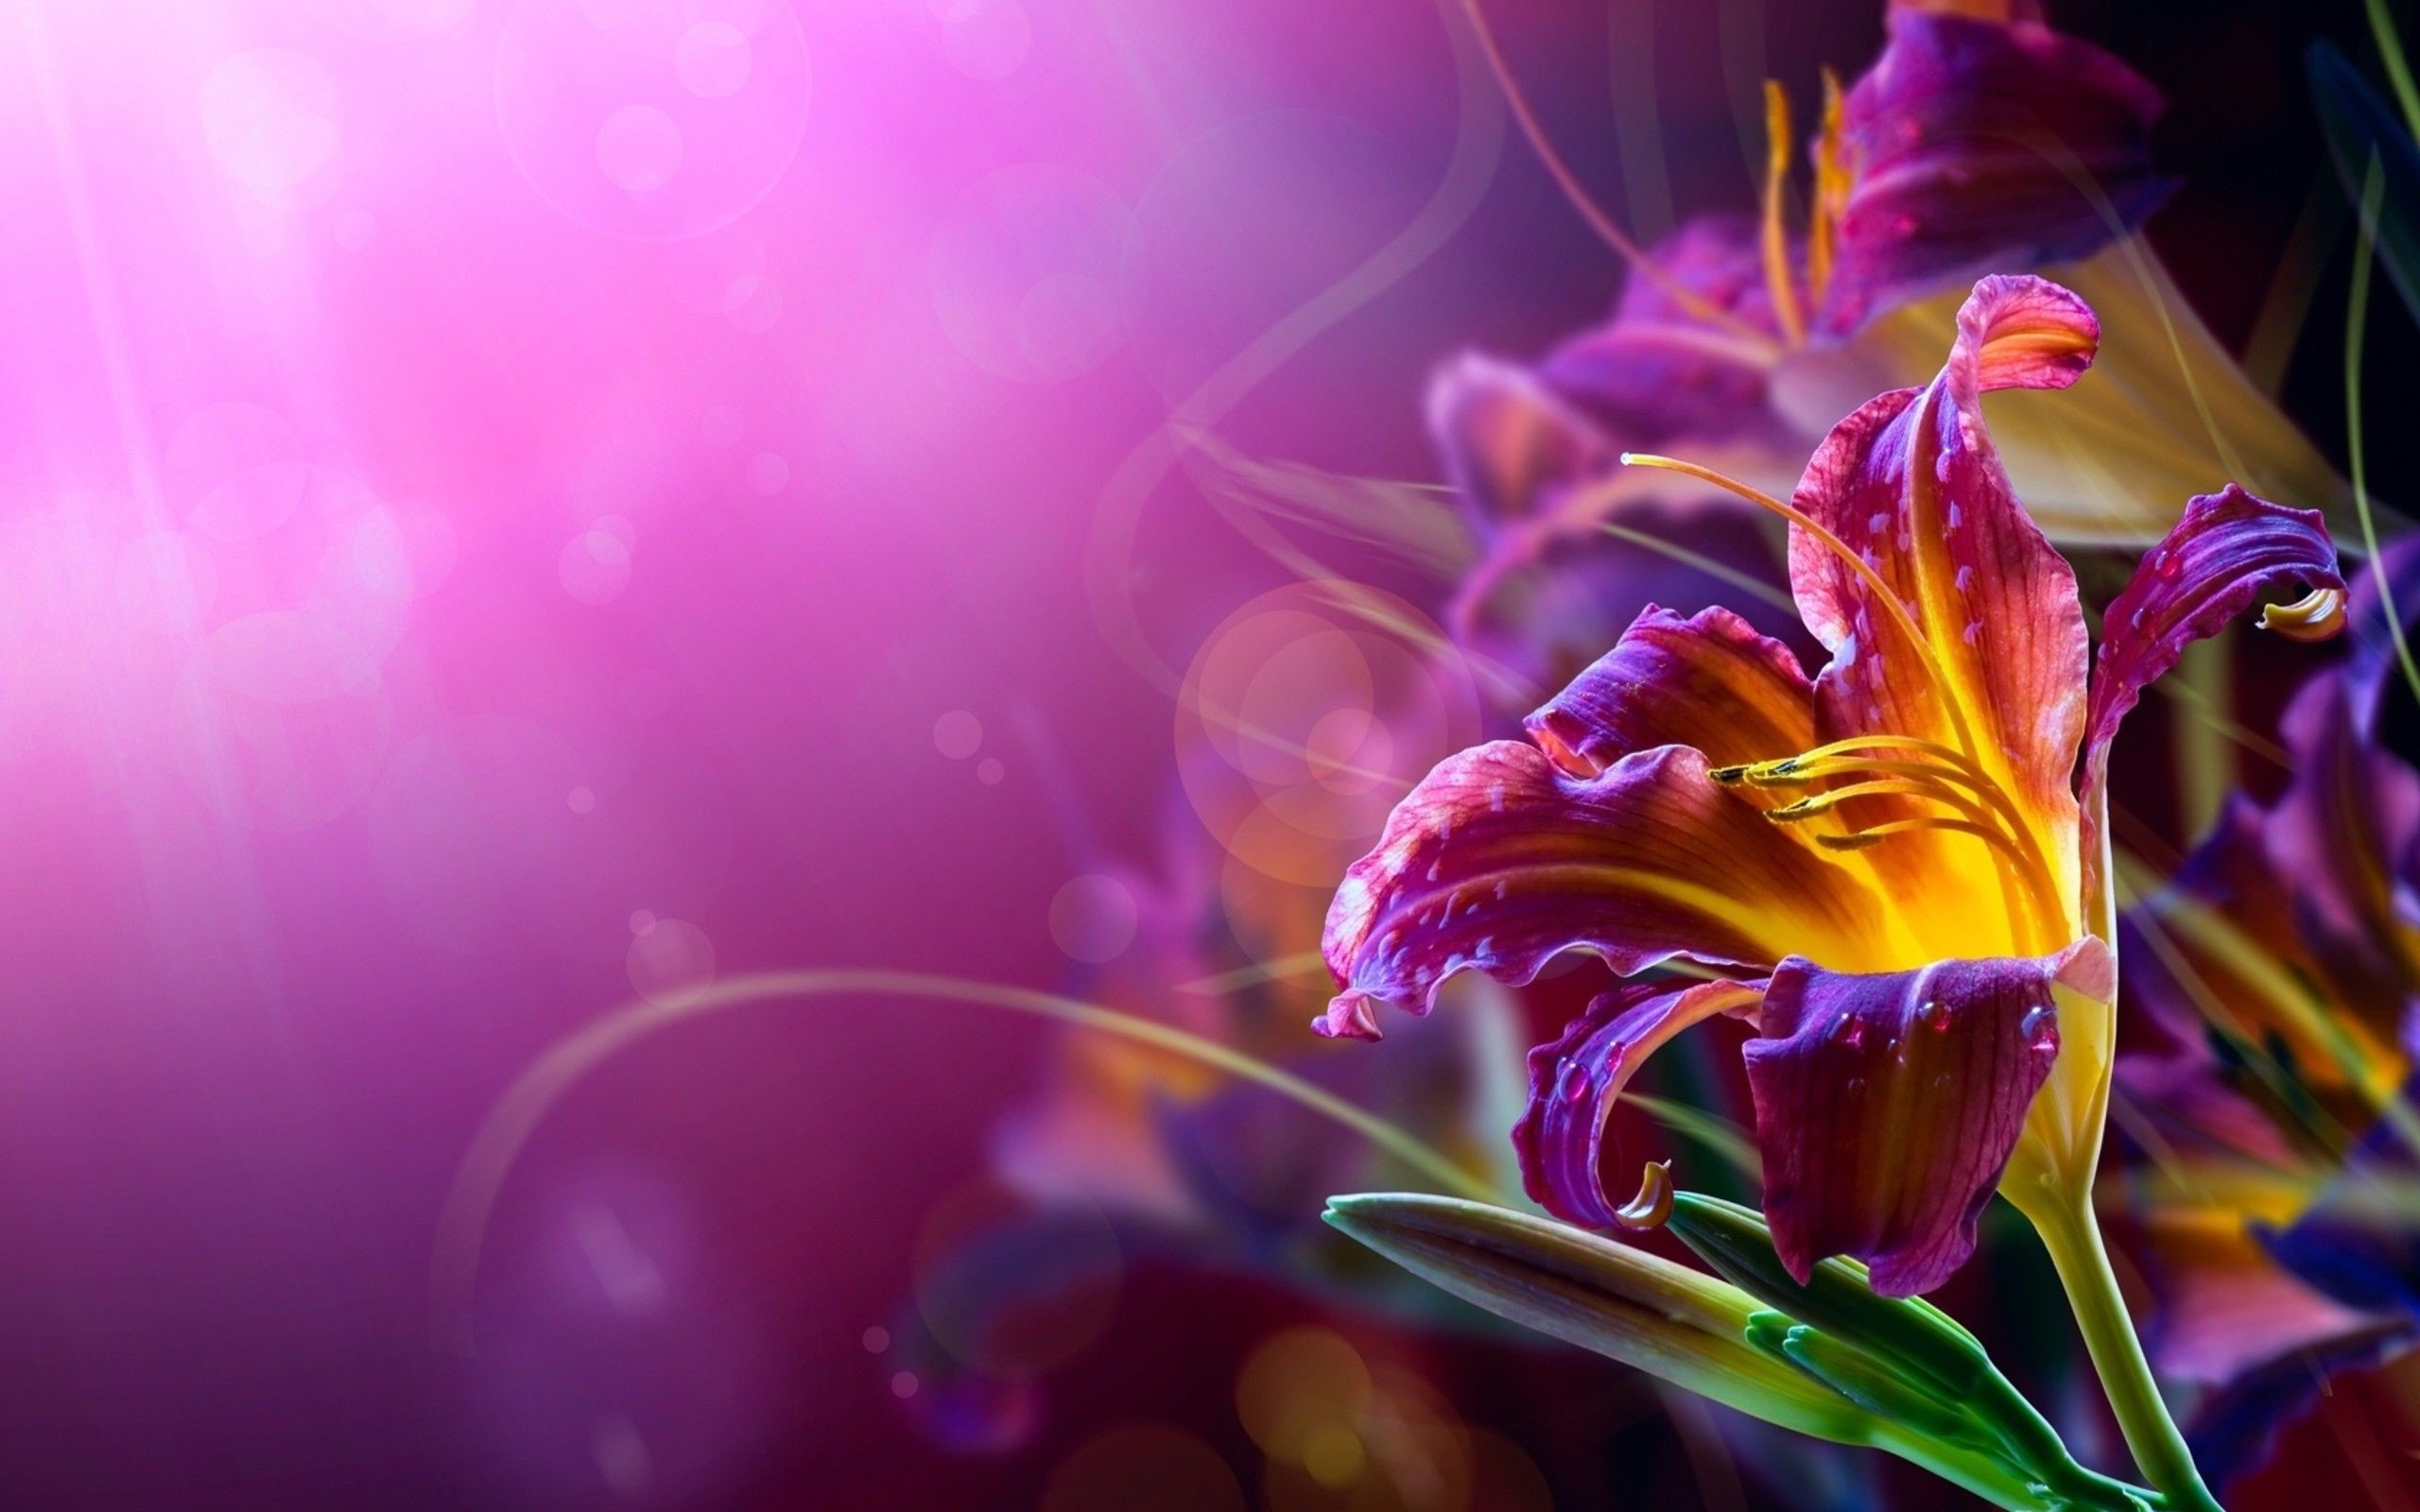 Abstract Floral 1080p Wallpapers